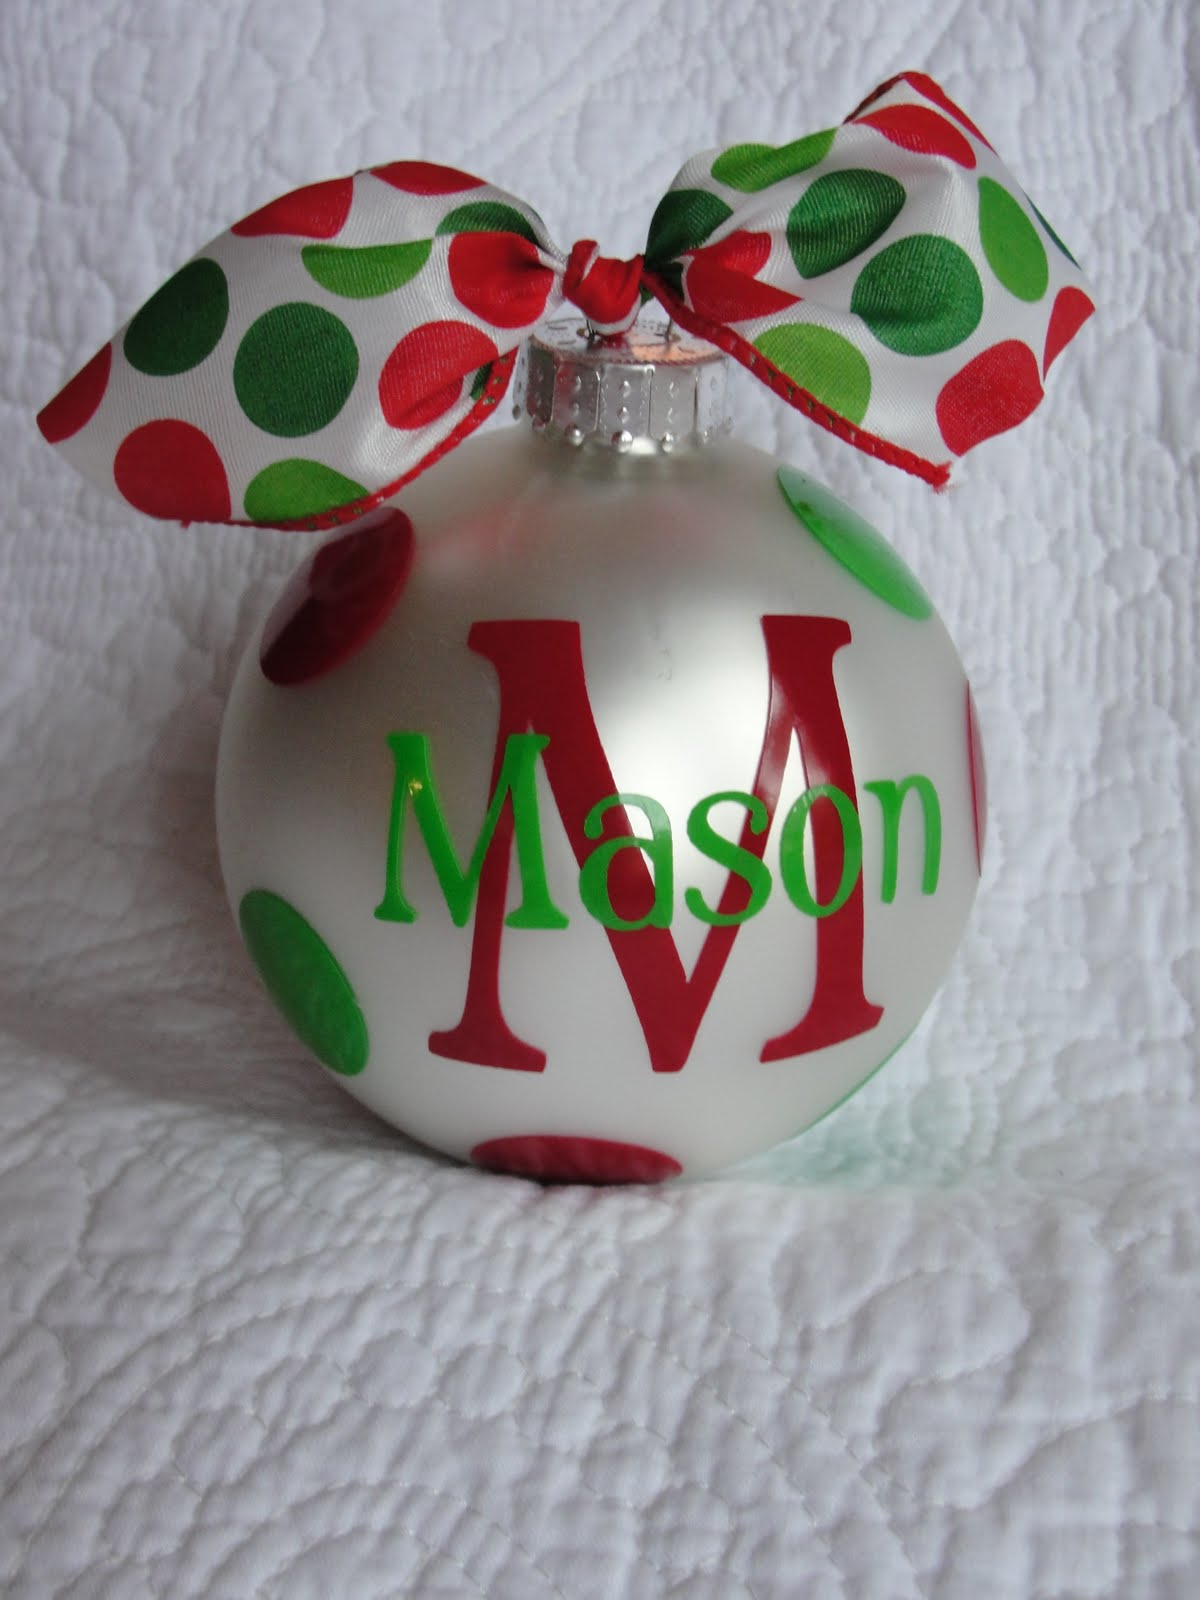 Sassy sites more than homemade ornaments